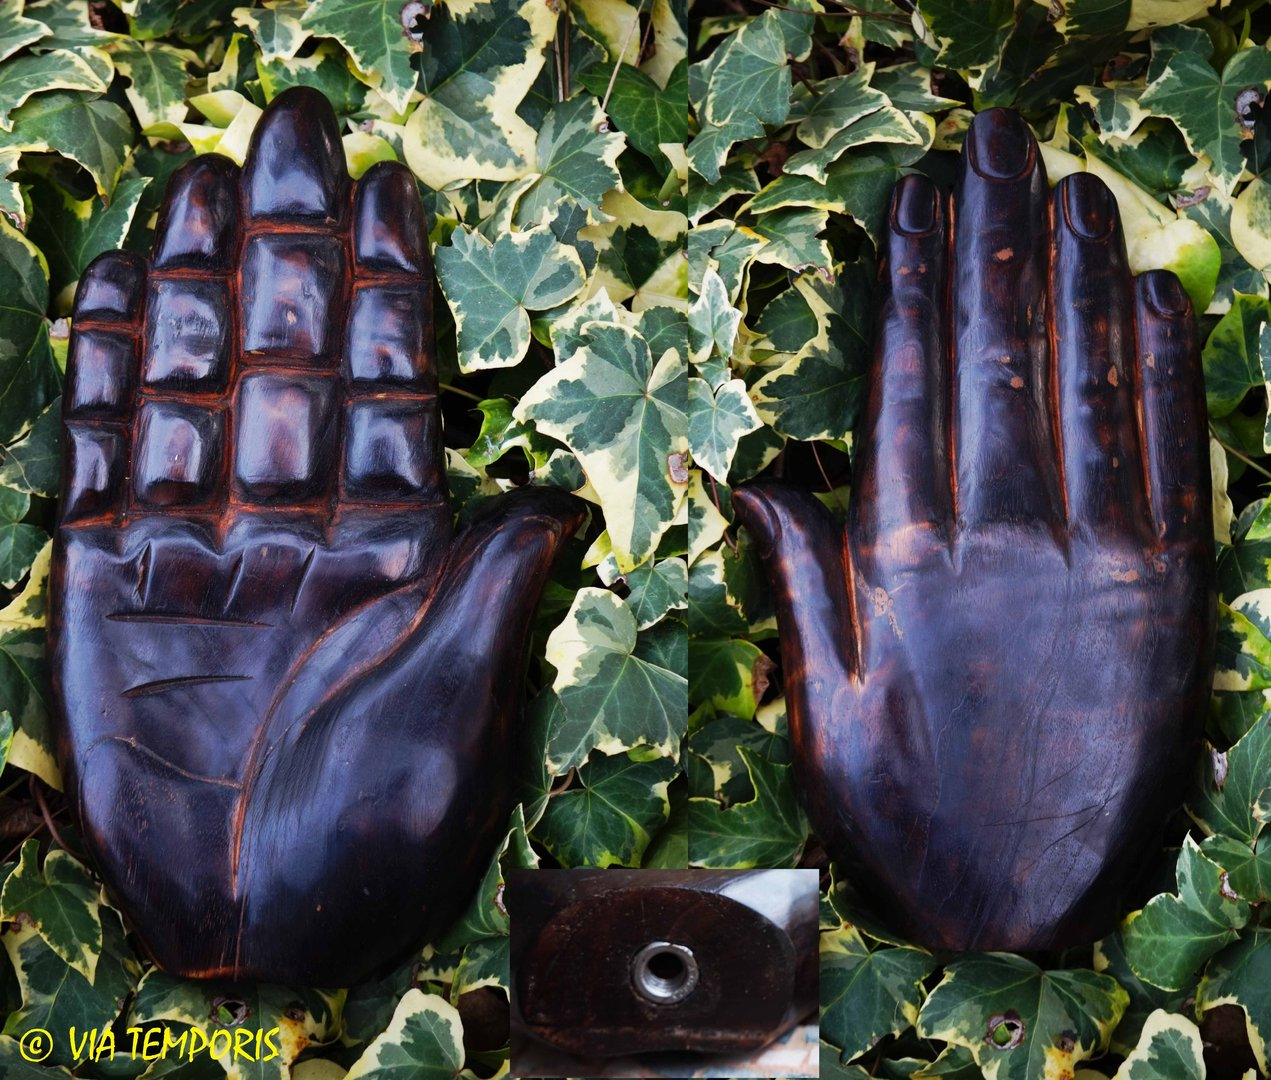 HAND OF ROMAN BANNER IN WAXED WOOD (MANUS FOR SIGNUM)